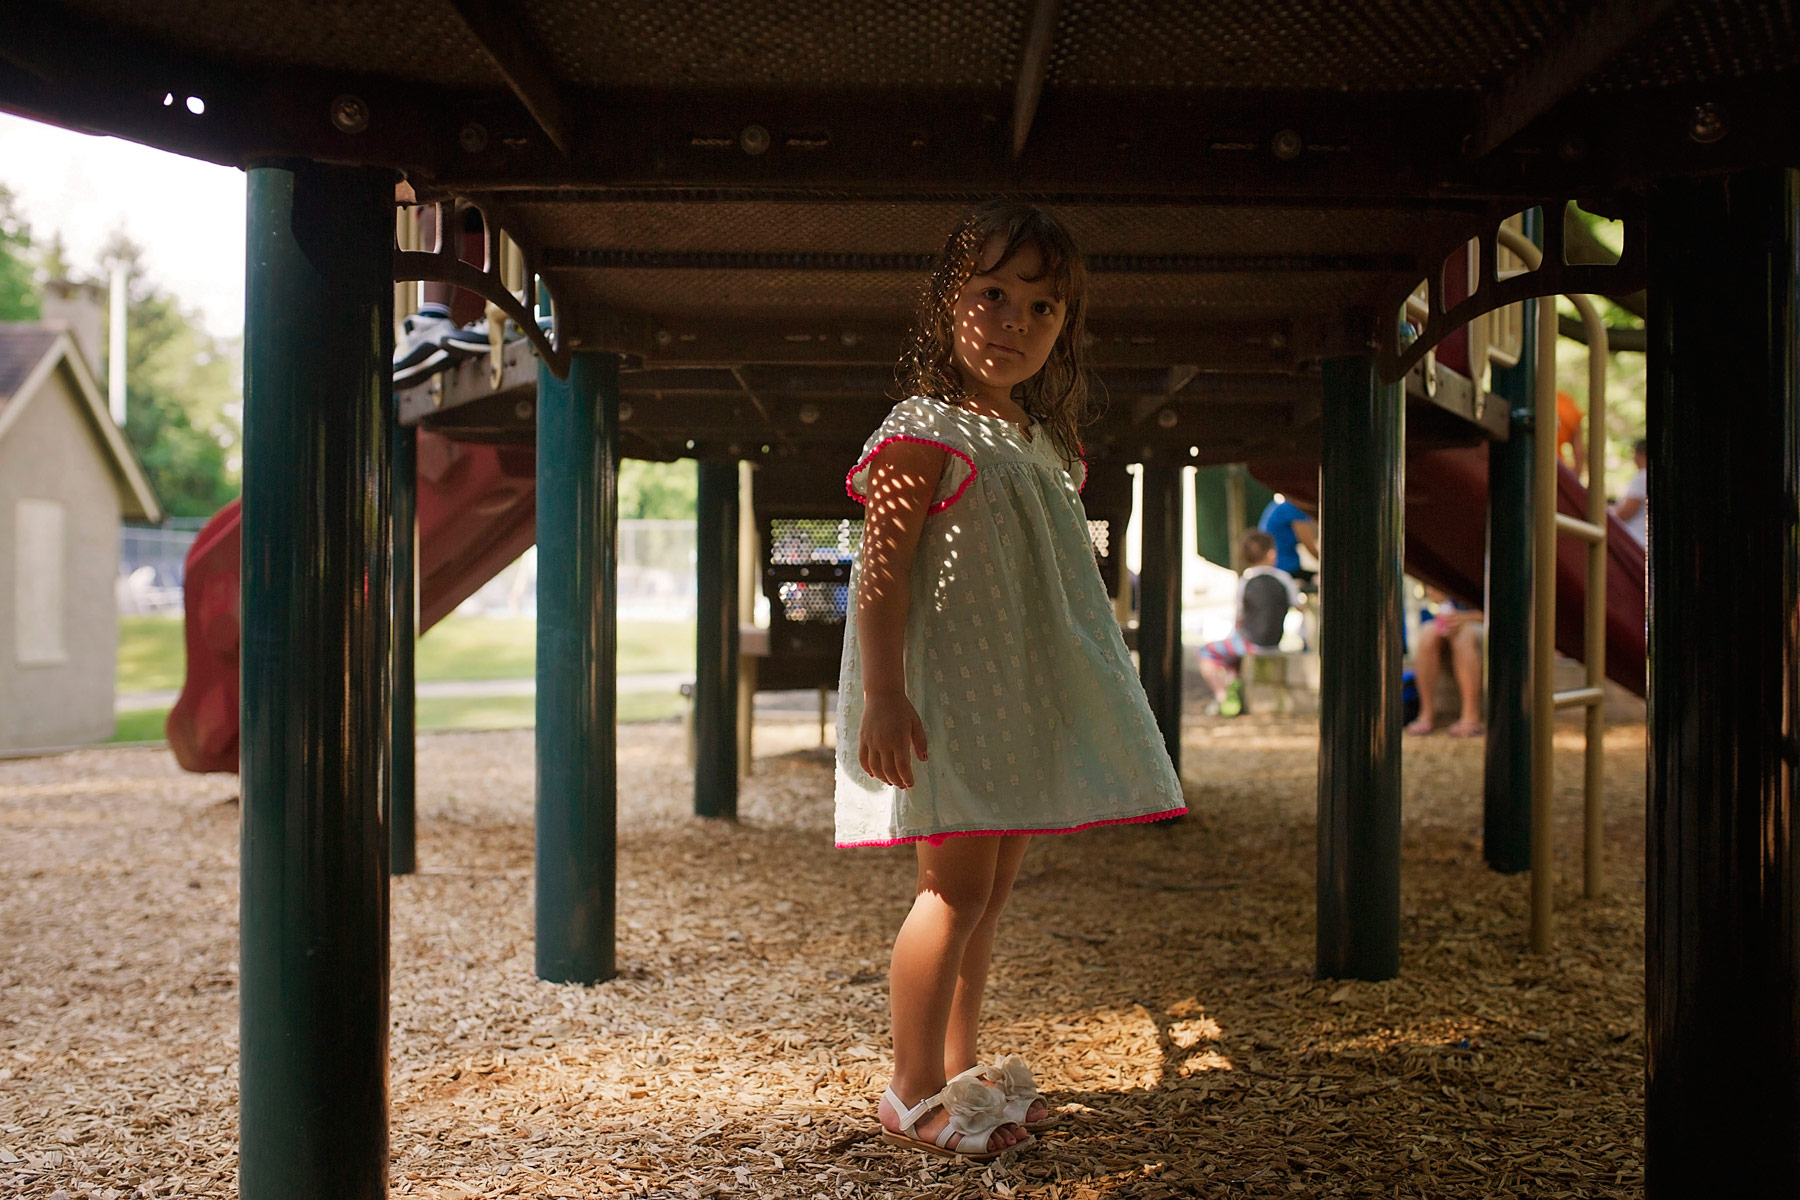 4 year old stands underneath playground while light creates a patter on her dress and face